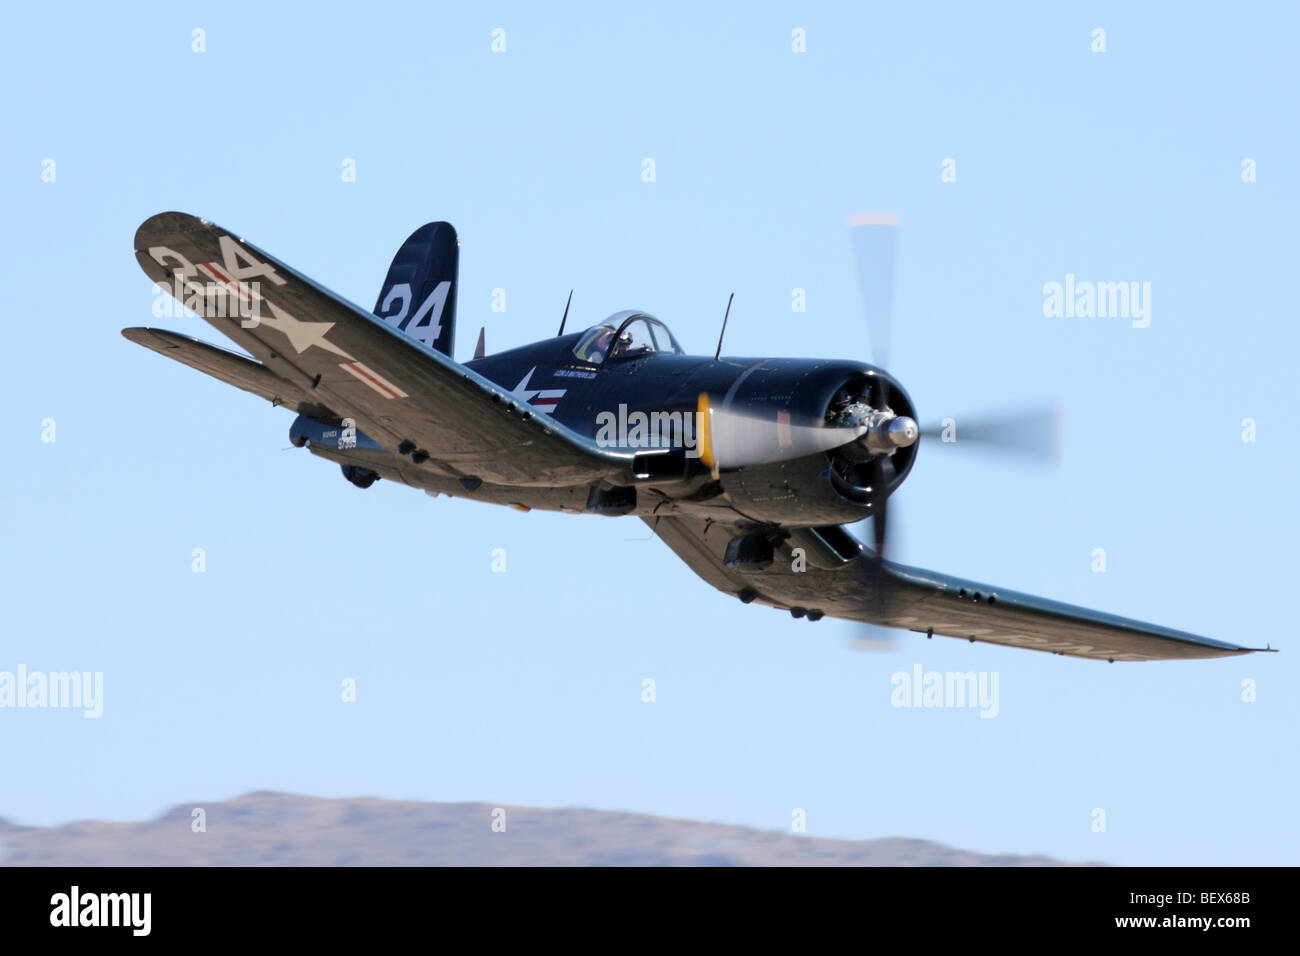 Chance Vought F4U-4 Corsair  during the 2009 Reno National Championship Air Races Unlimited Bronze finals. - Stock Image